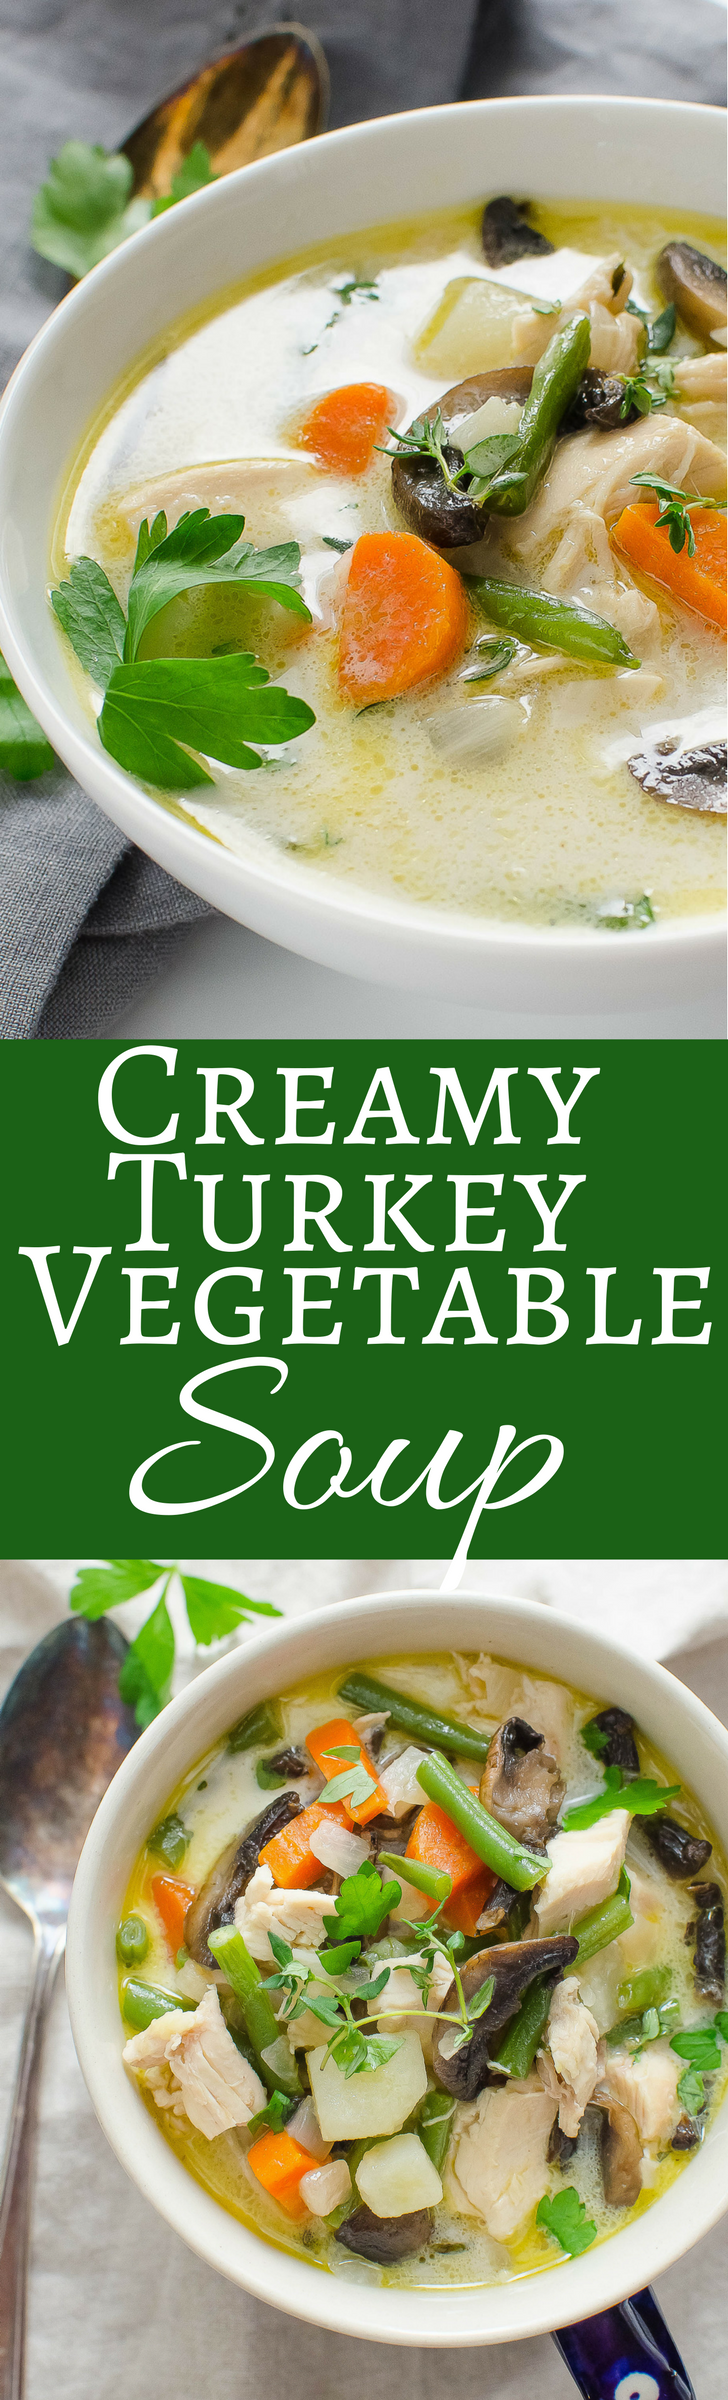 Made with a homemade turkey stock, potatoes, carrots, mushrooms and green beans -- plus a swirl of cream, it's what turkey soup should be!